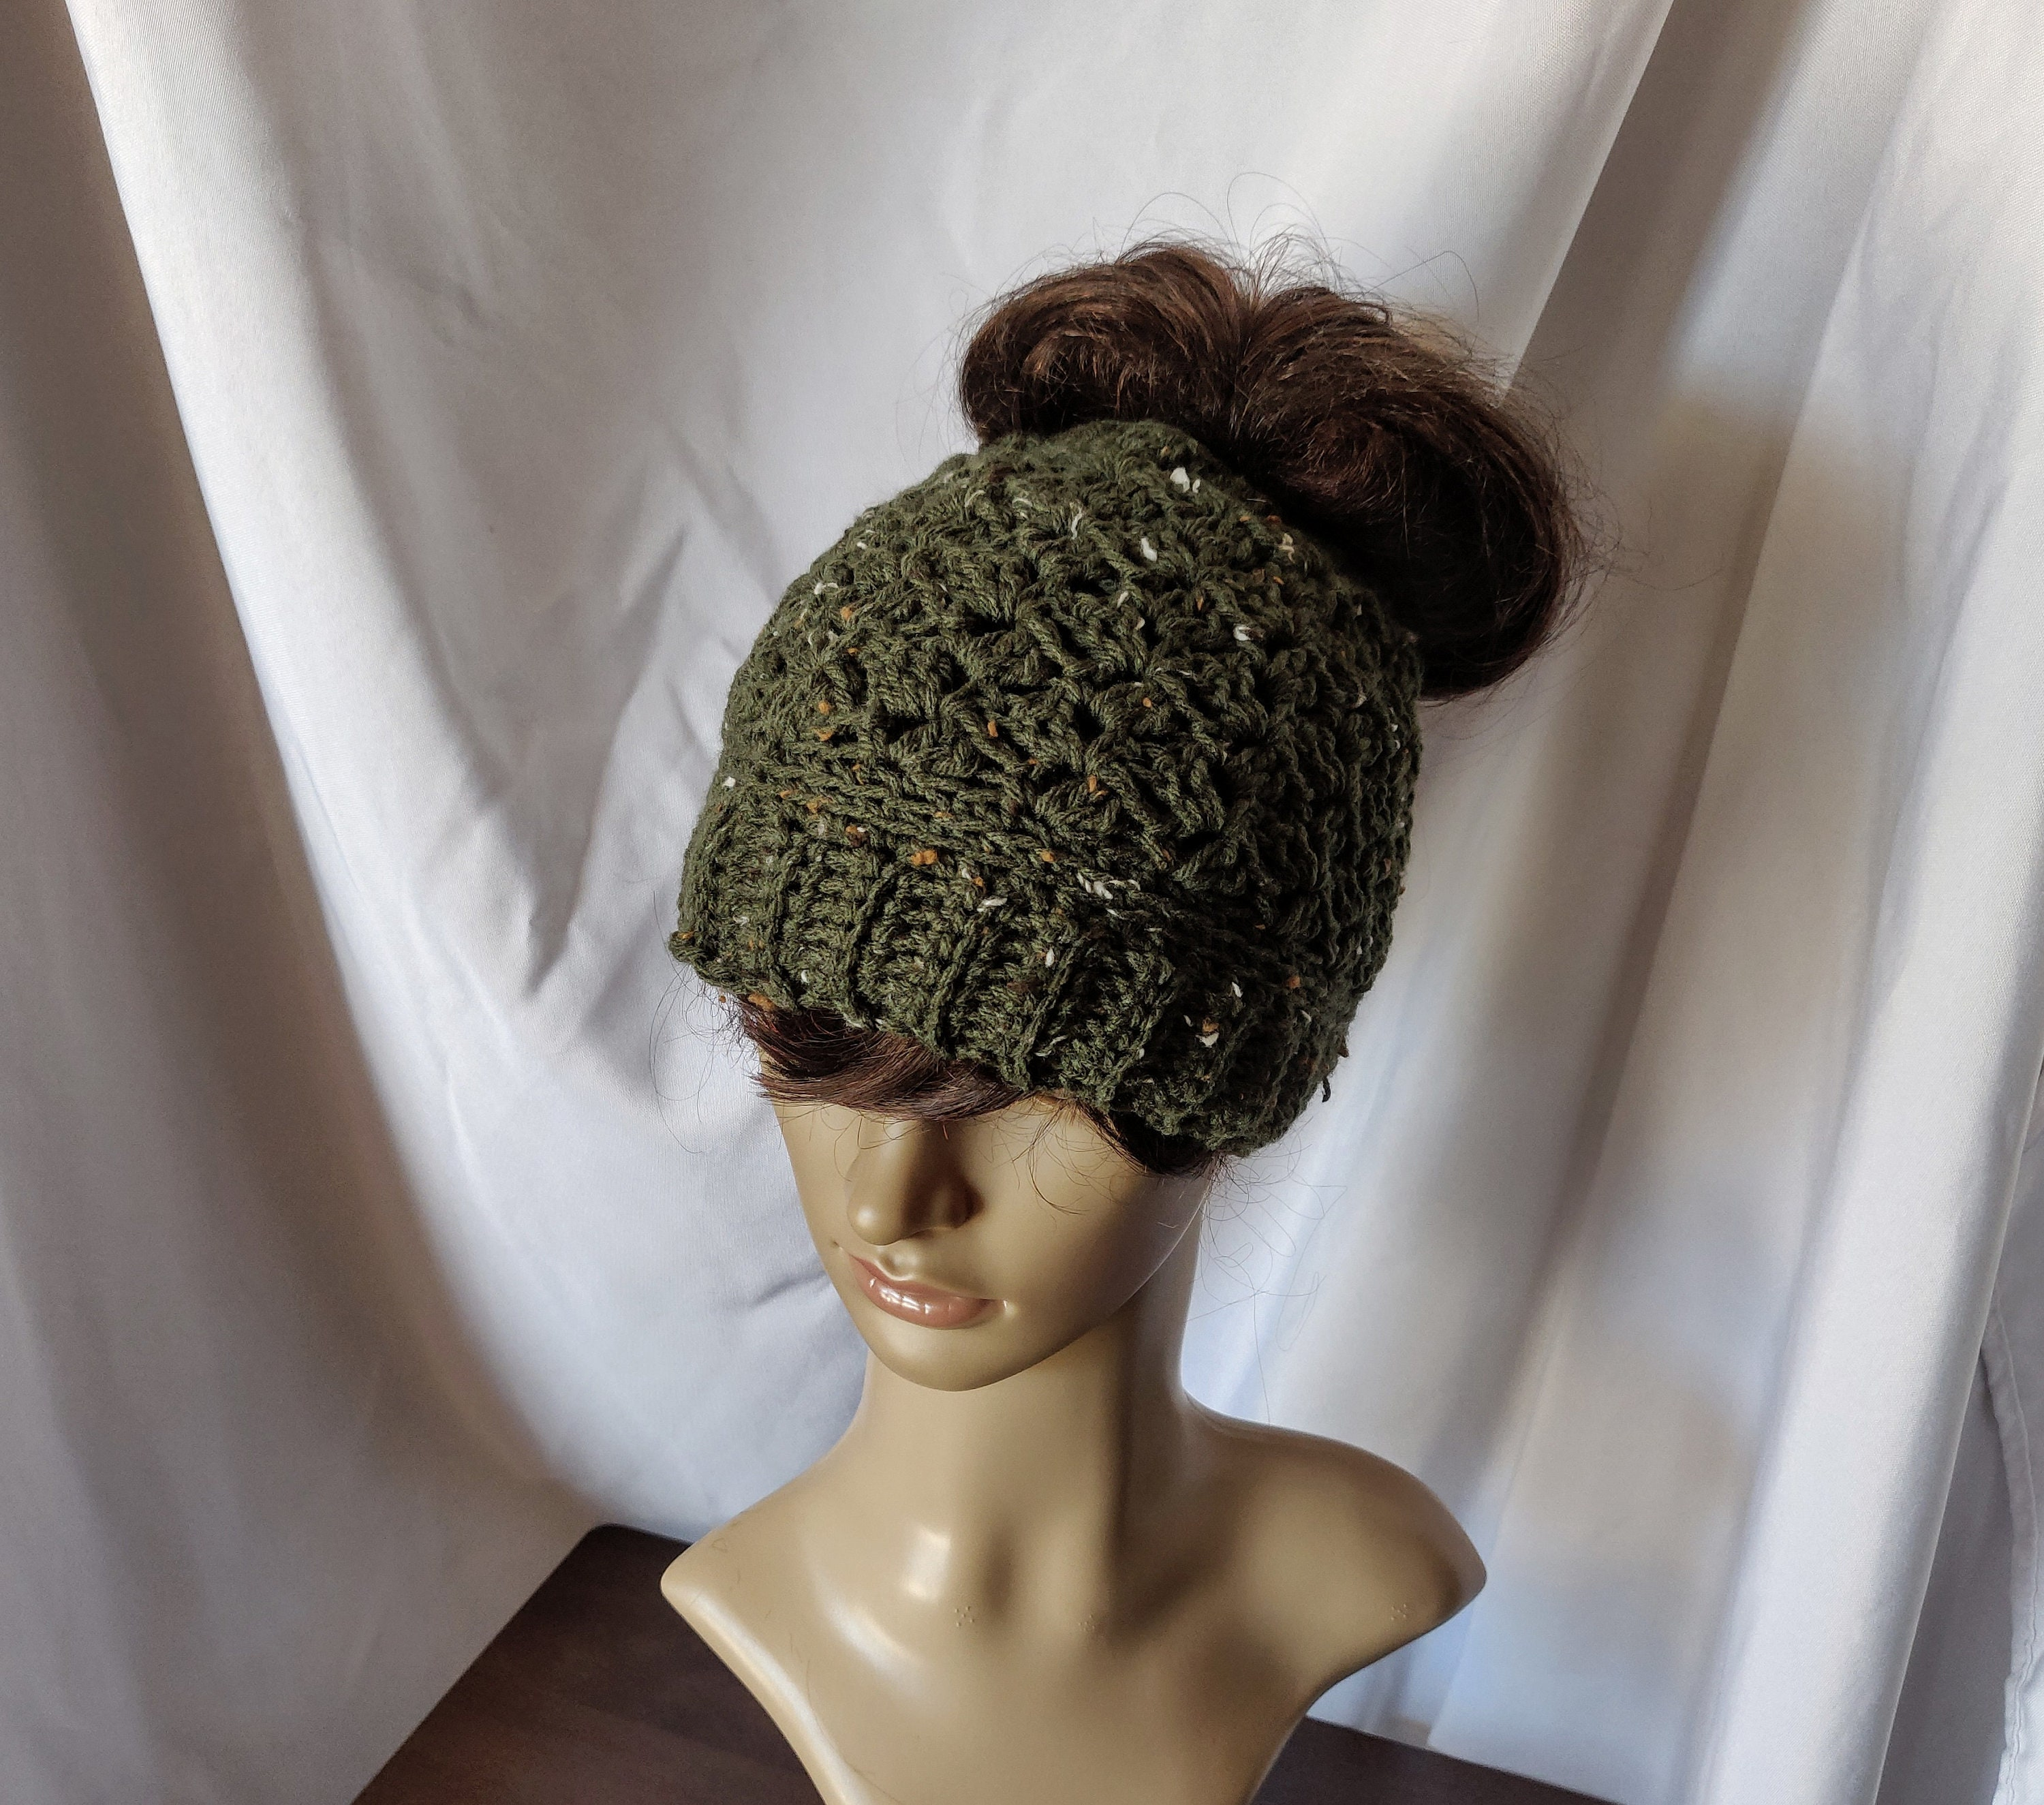 719de6c49 Messy Bun Hat olive green with tan ivory flecks Available as a regular  beanie